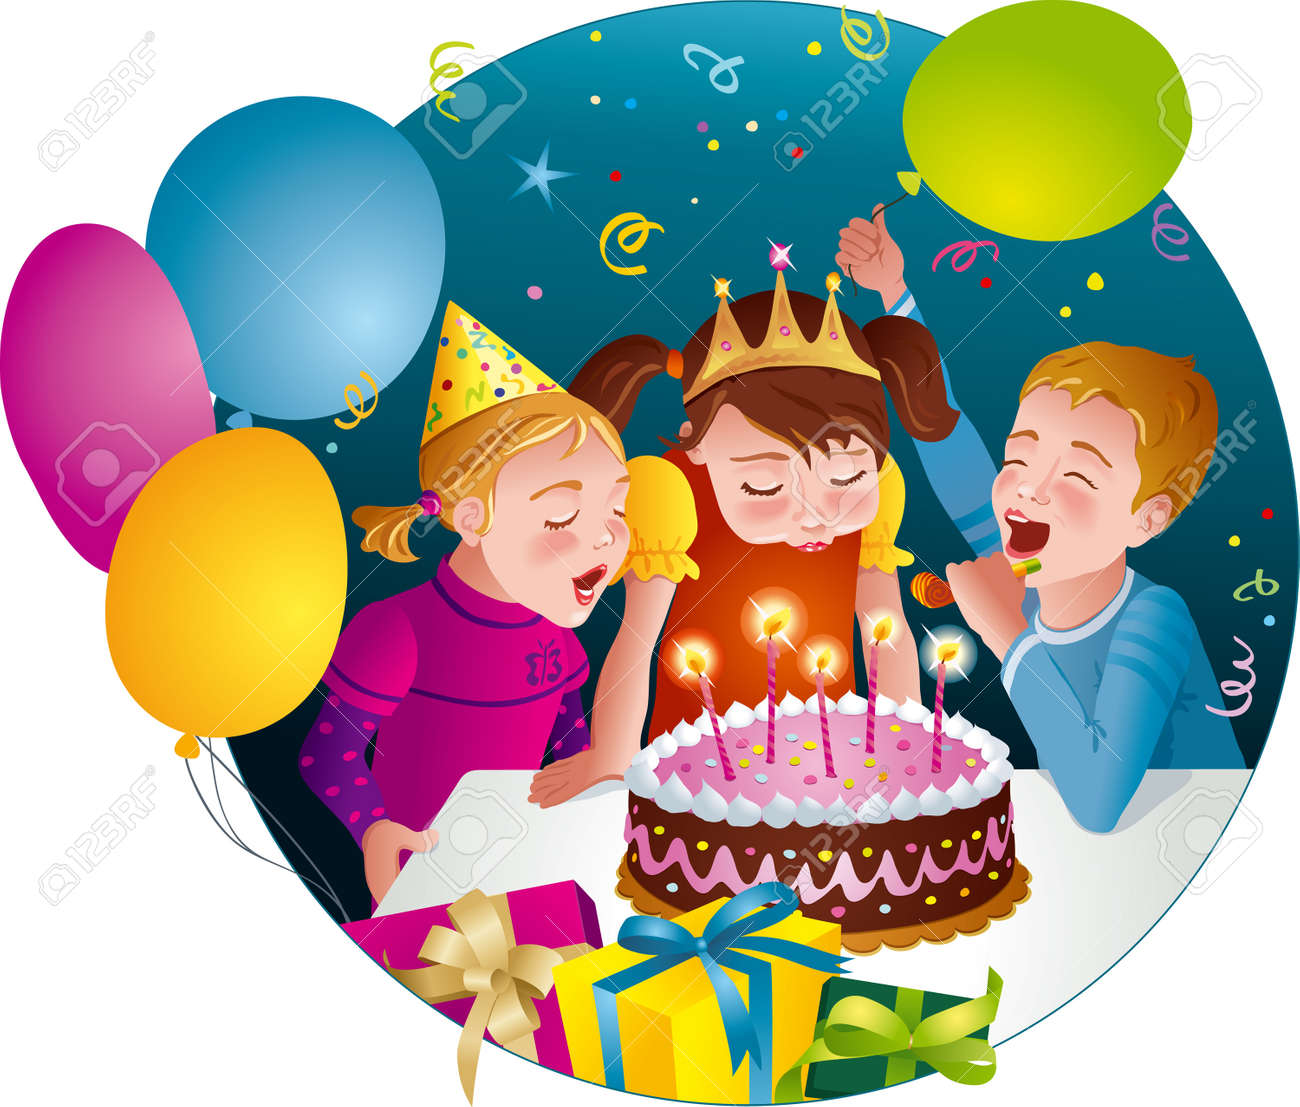 Child s birthday party - kids having fun, blowing candles on cake Balloons, whistles, presents Vector illustration - 24180875